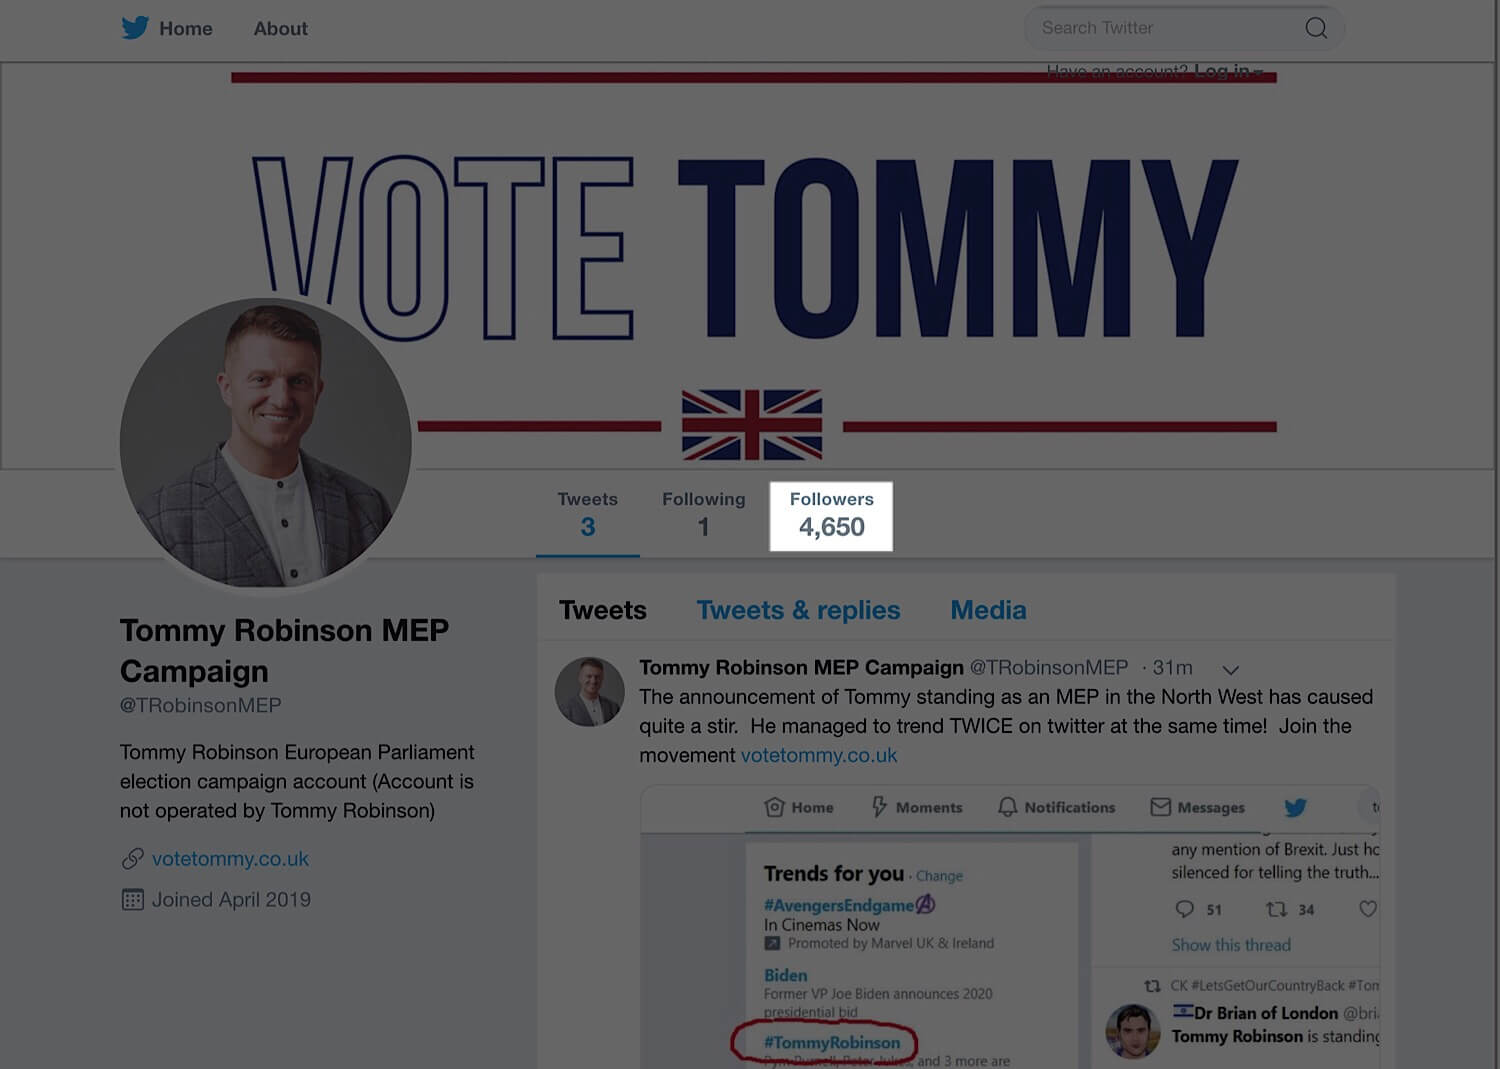 The archived version of Tommy Robinson's MEP campaign Twitter account before it was suspended.